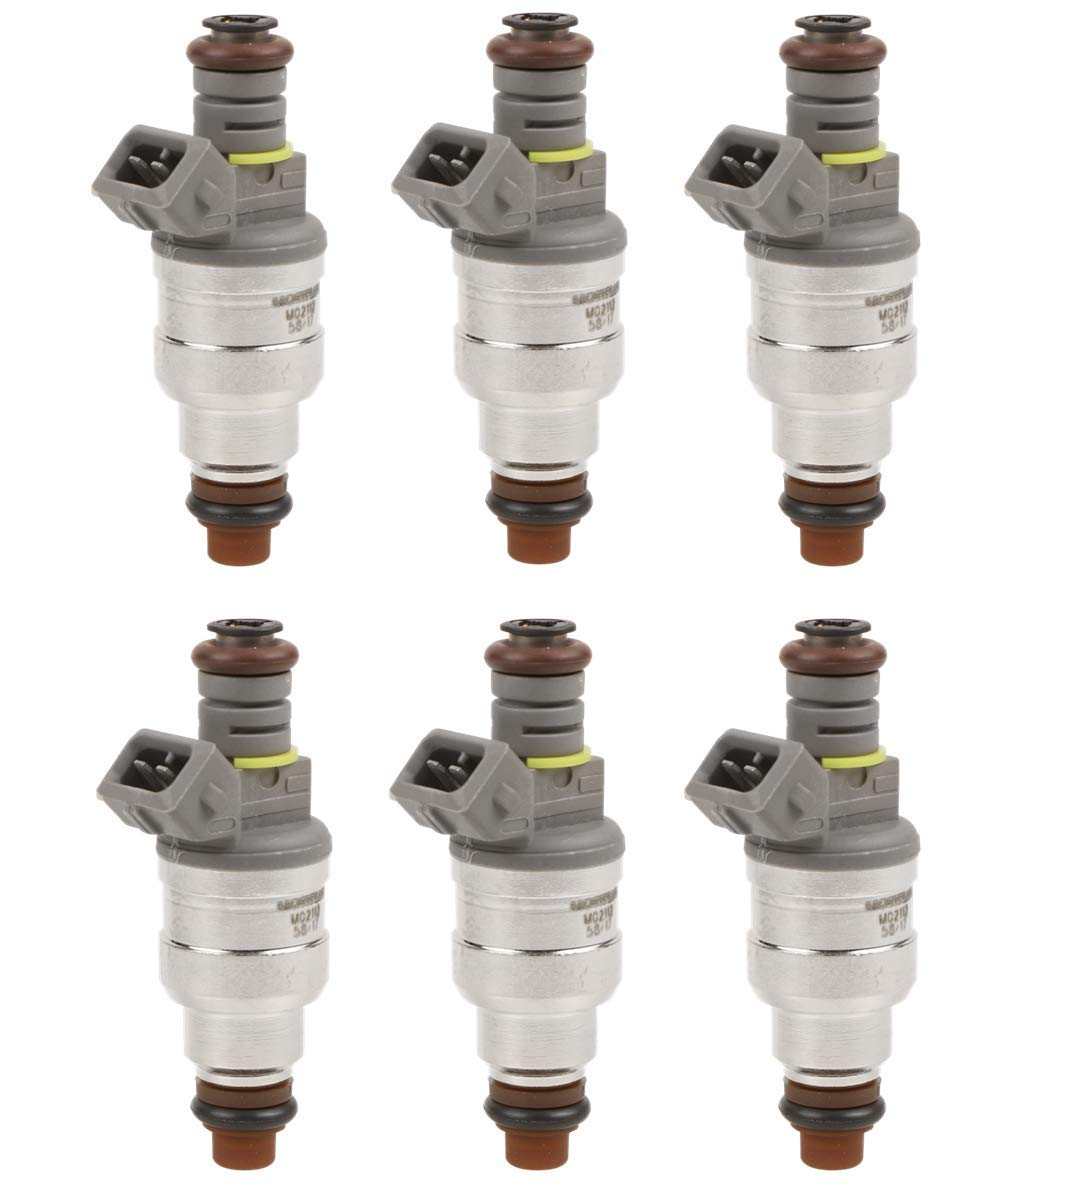 MOSTPLUS 6 PCS Fuel Injectors For Ford Ranger Explorer Mustang Mazda B400 Mercury Mountaineer Land Rover LR3 4.0L 0280158055 822-11193